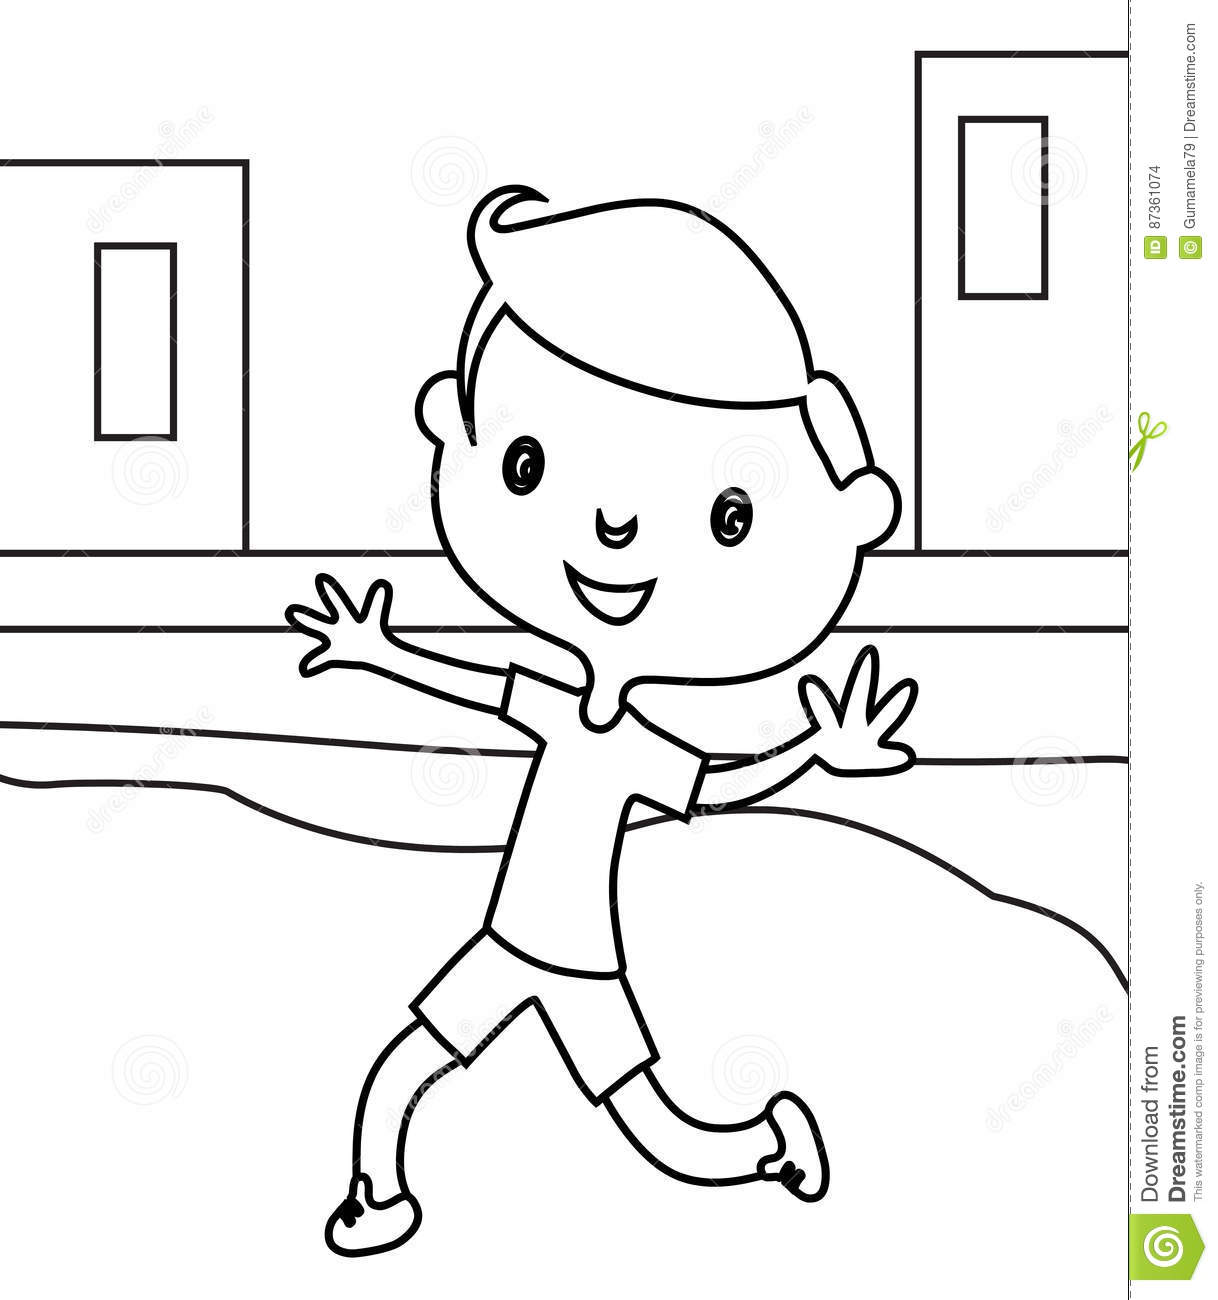 running coloring pages - coloring page of a boy running murderthestout